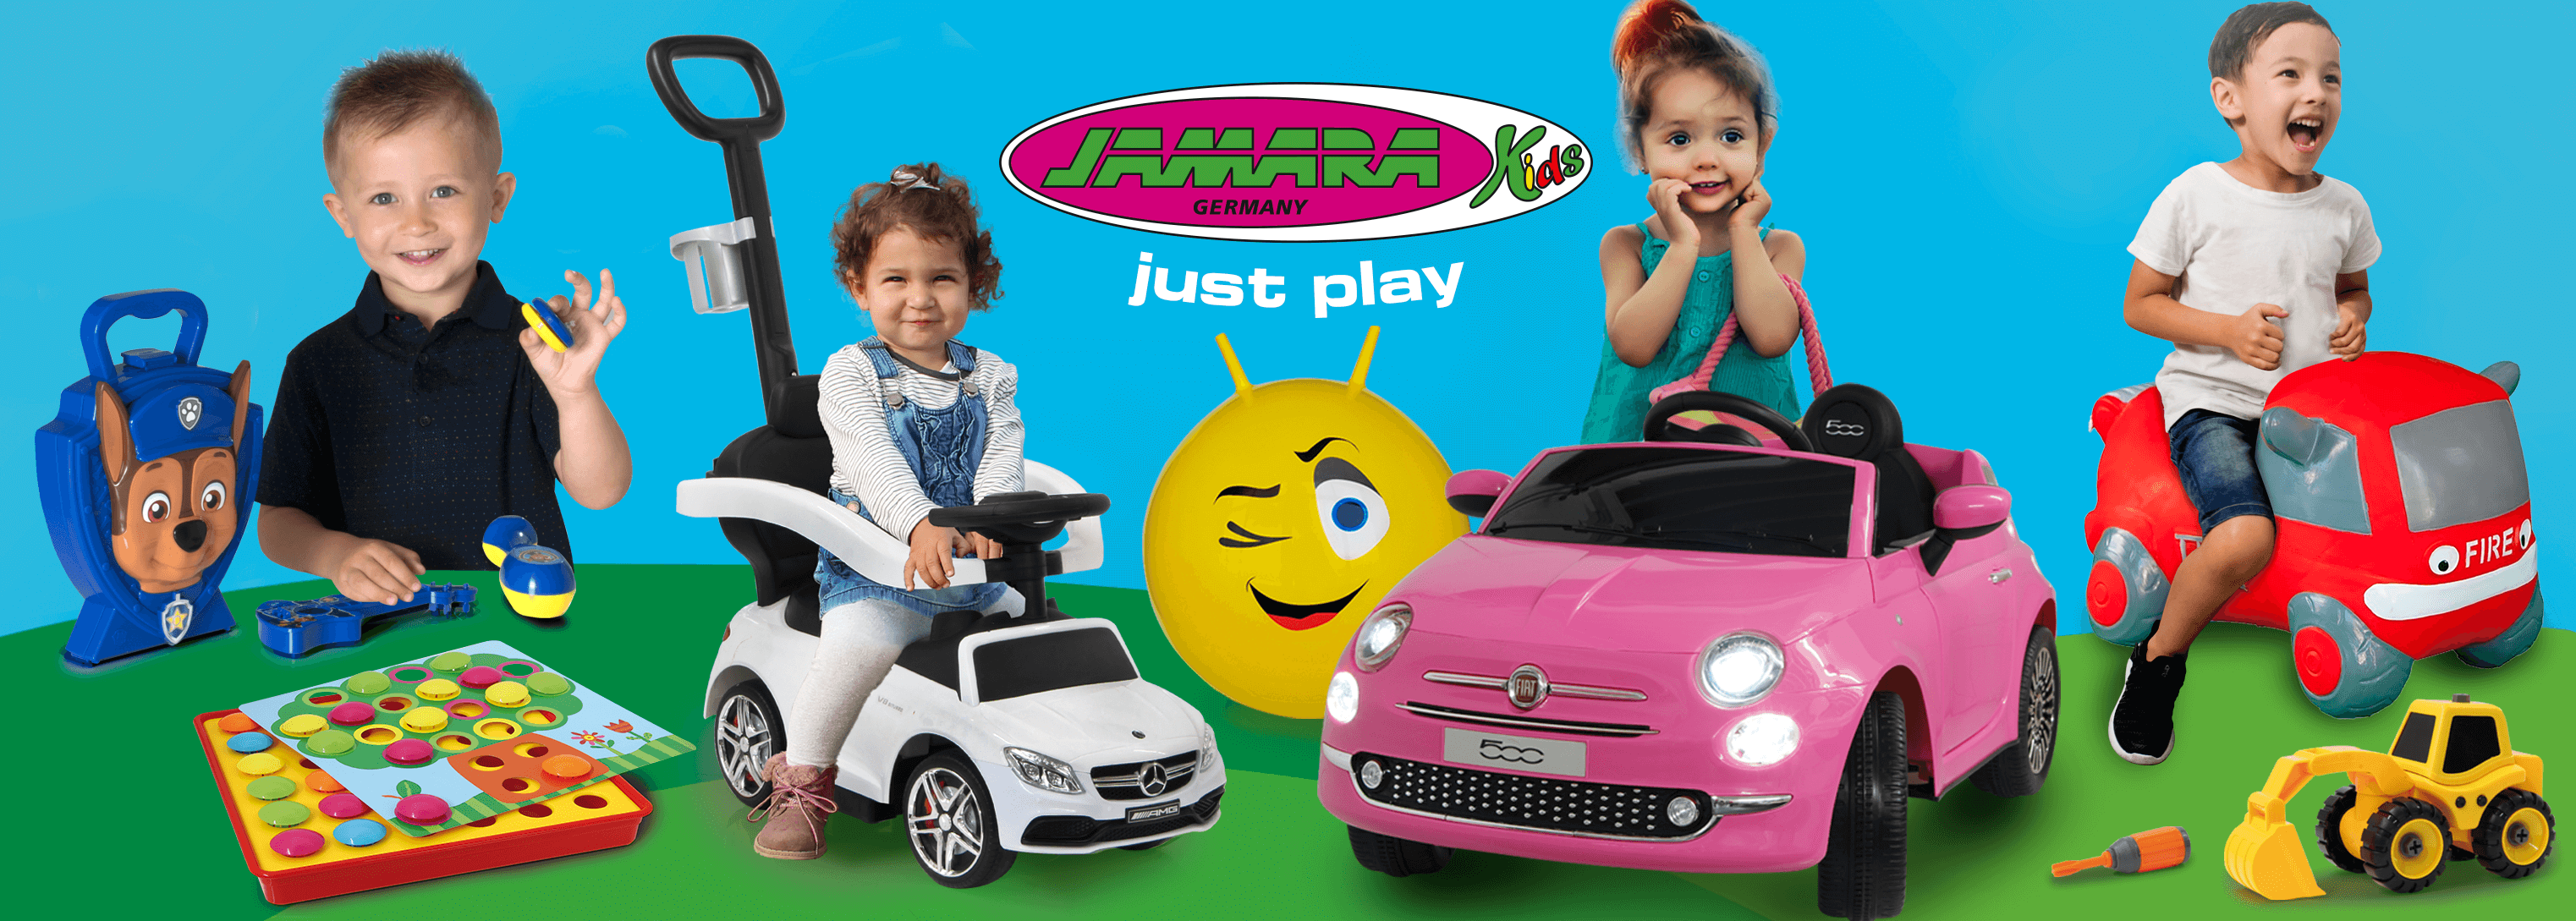 Jamara RC toys - without any construction effort immediately ready for use